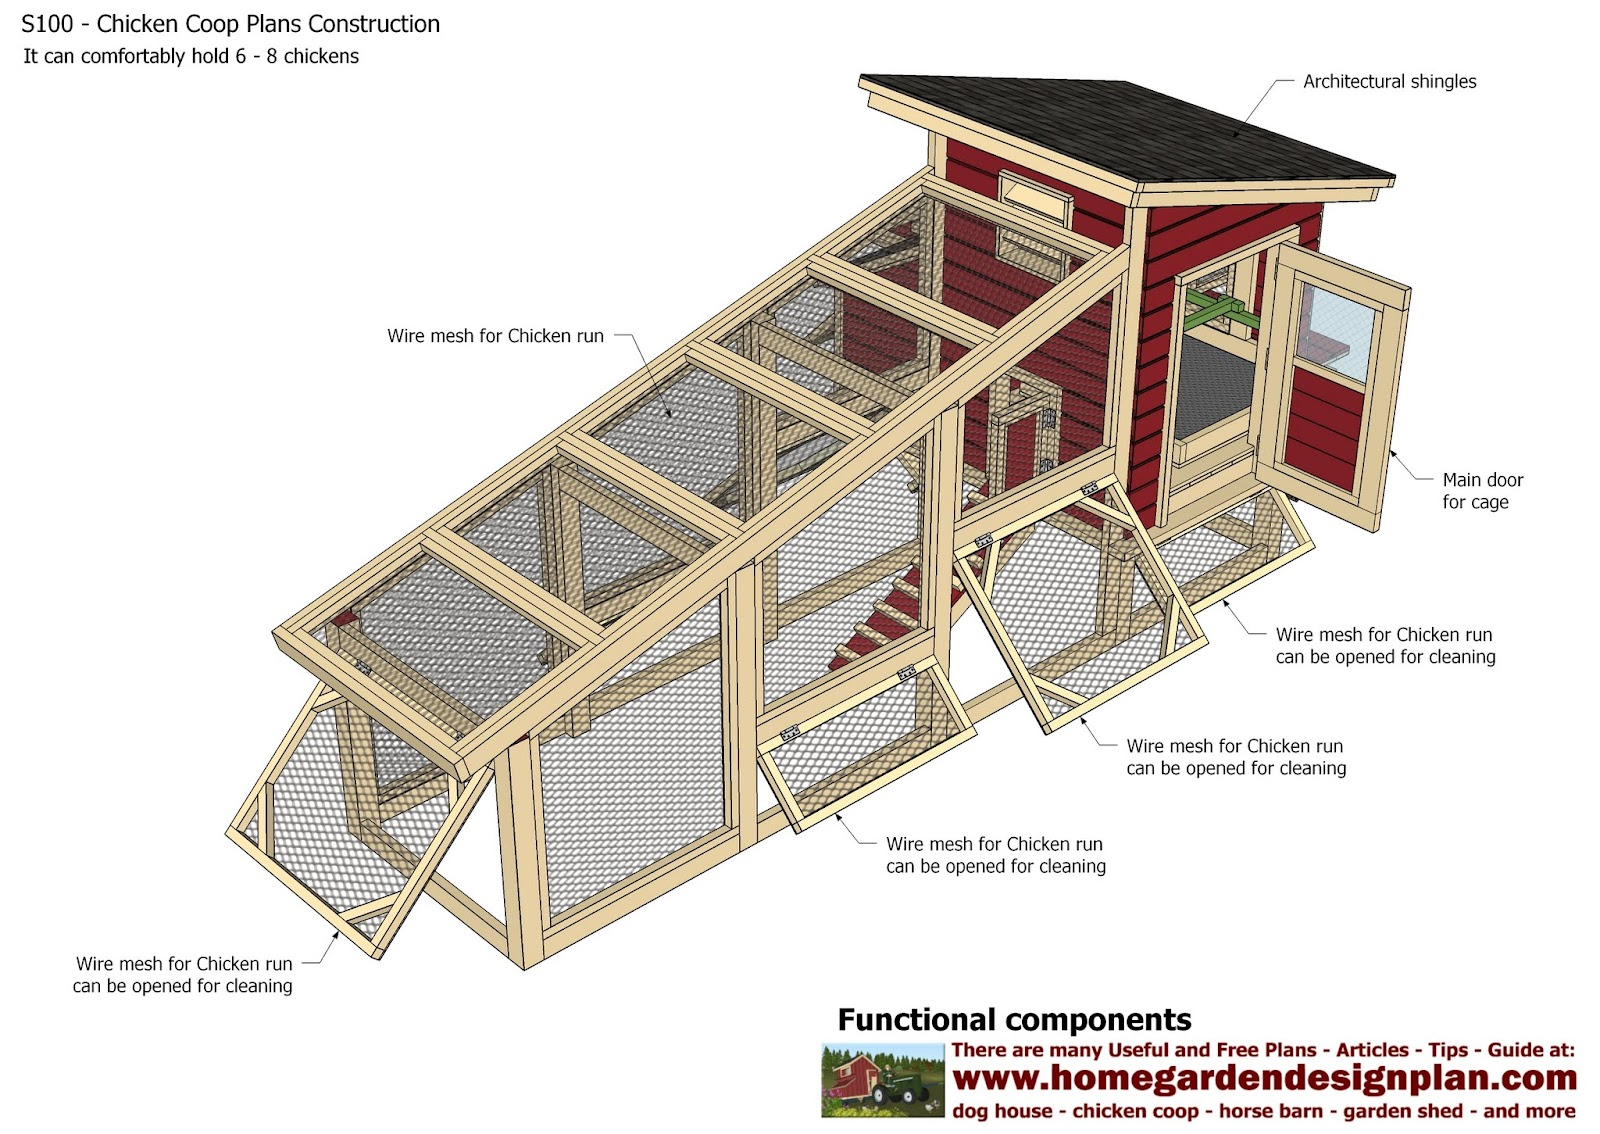 Home garden plans s100 chicken coop plans construction for Plans chicken coop